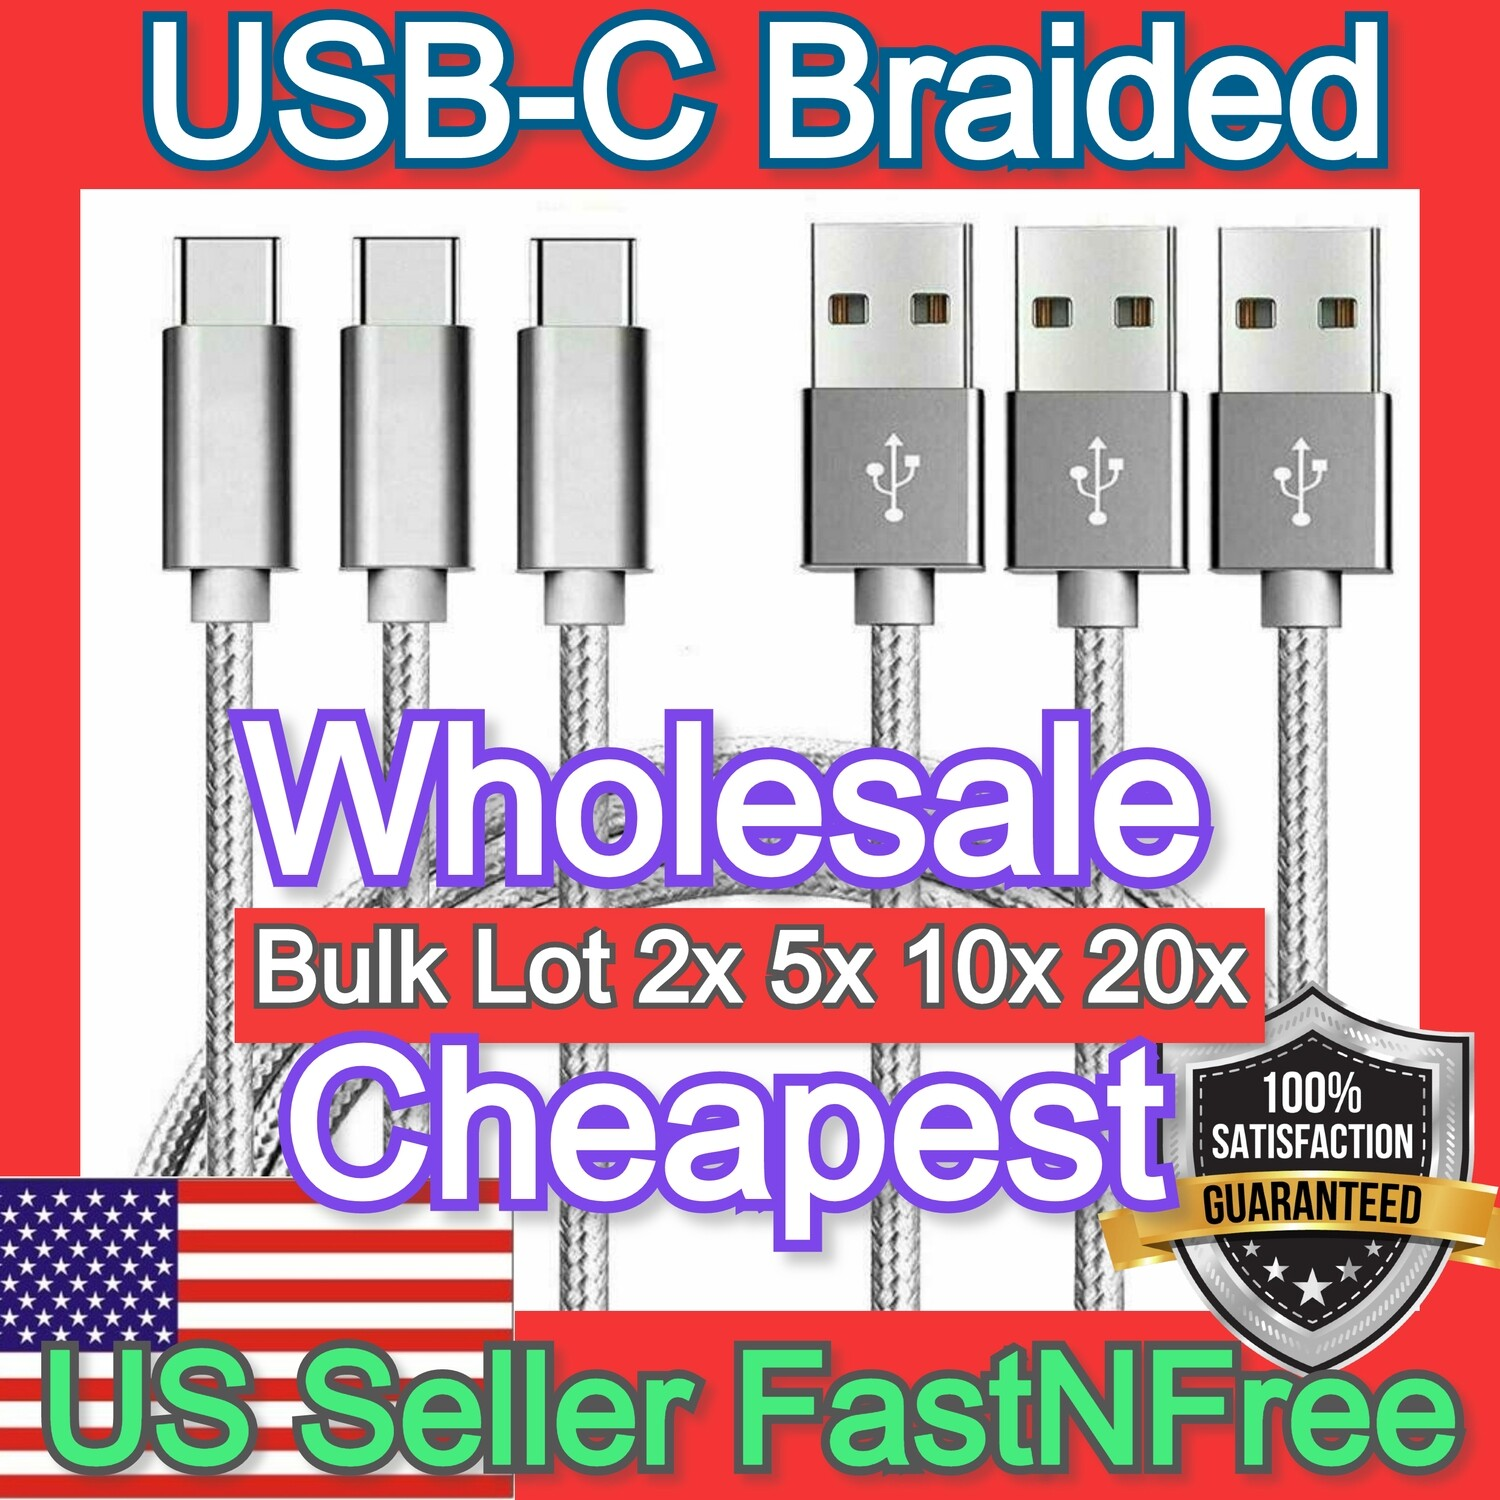 USB-C Bulk USB C Cable 3ft Fast Charger USBC Braided